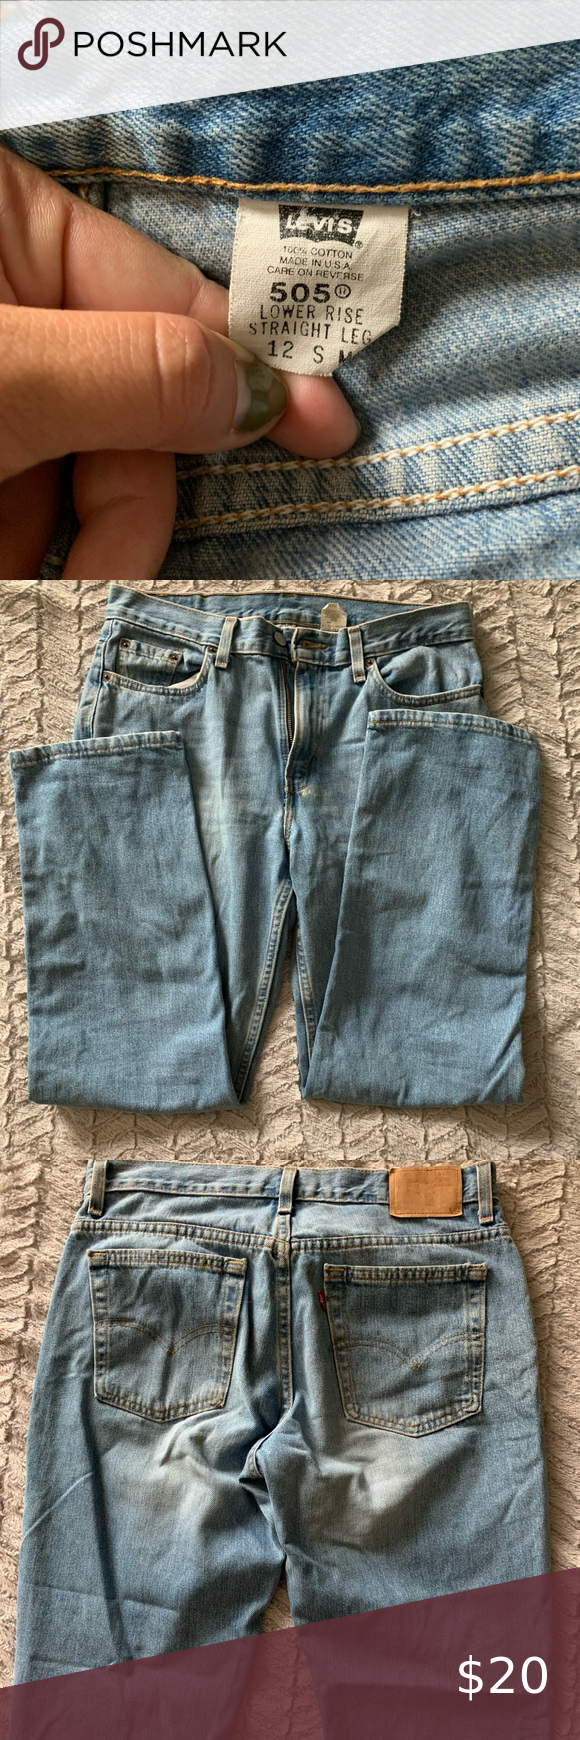 a5c79b24b3ee0b70abf759c32b93aa58 - How To Get Dirt Stains Out Of Light Jeans